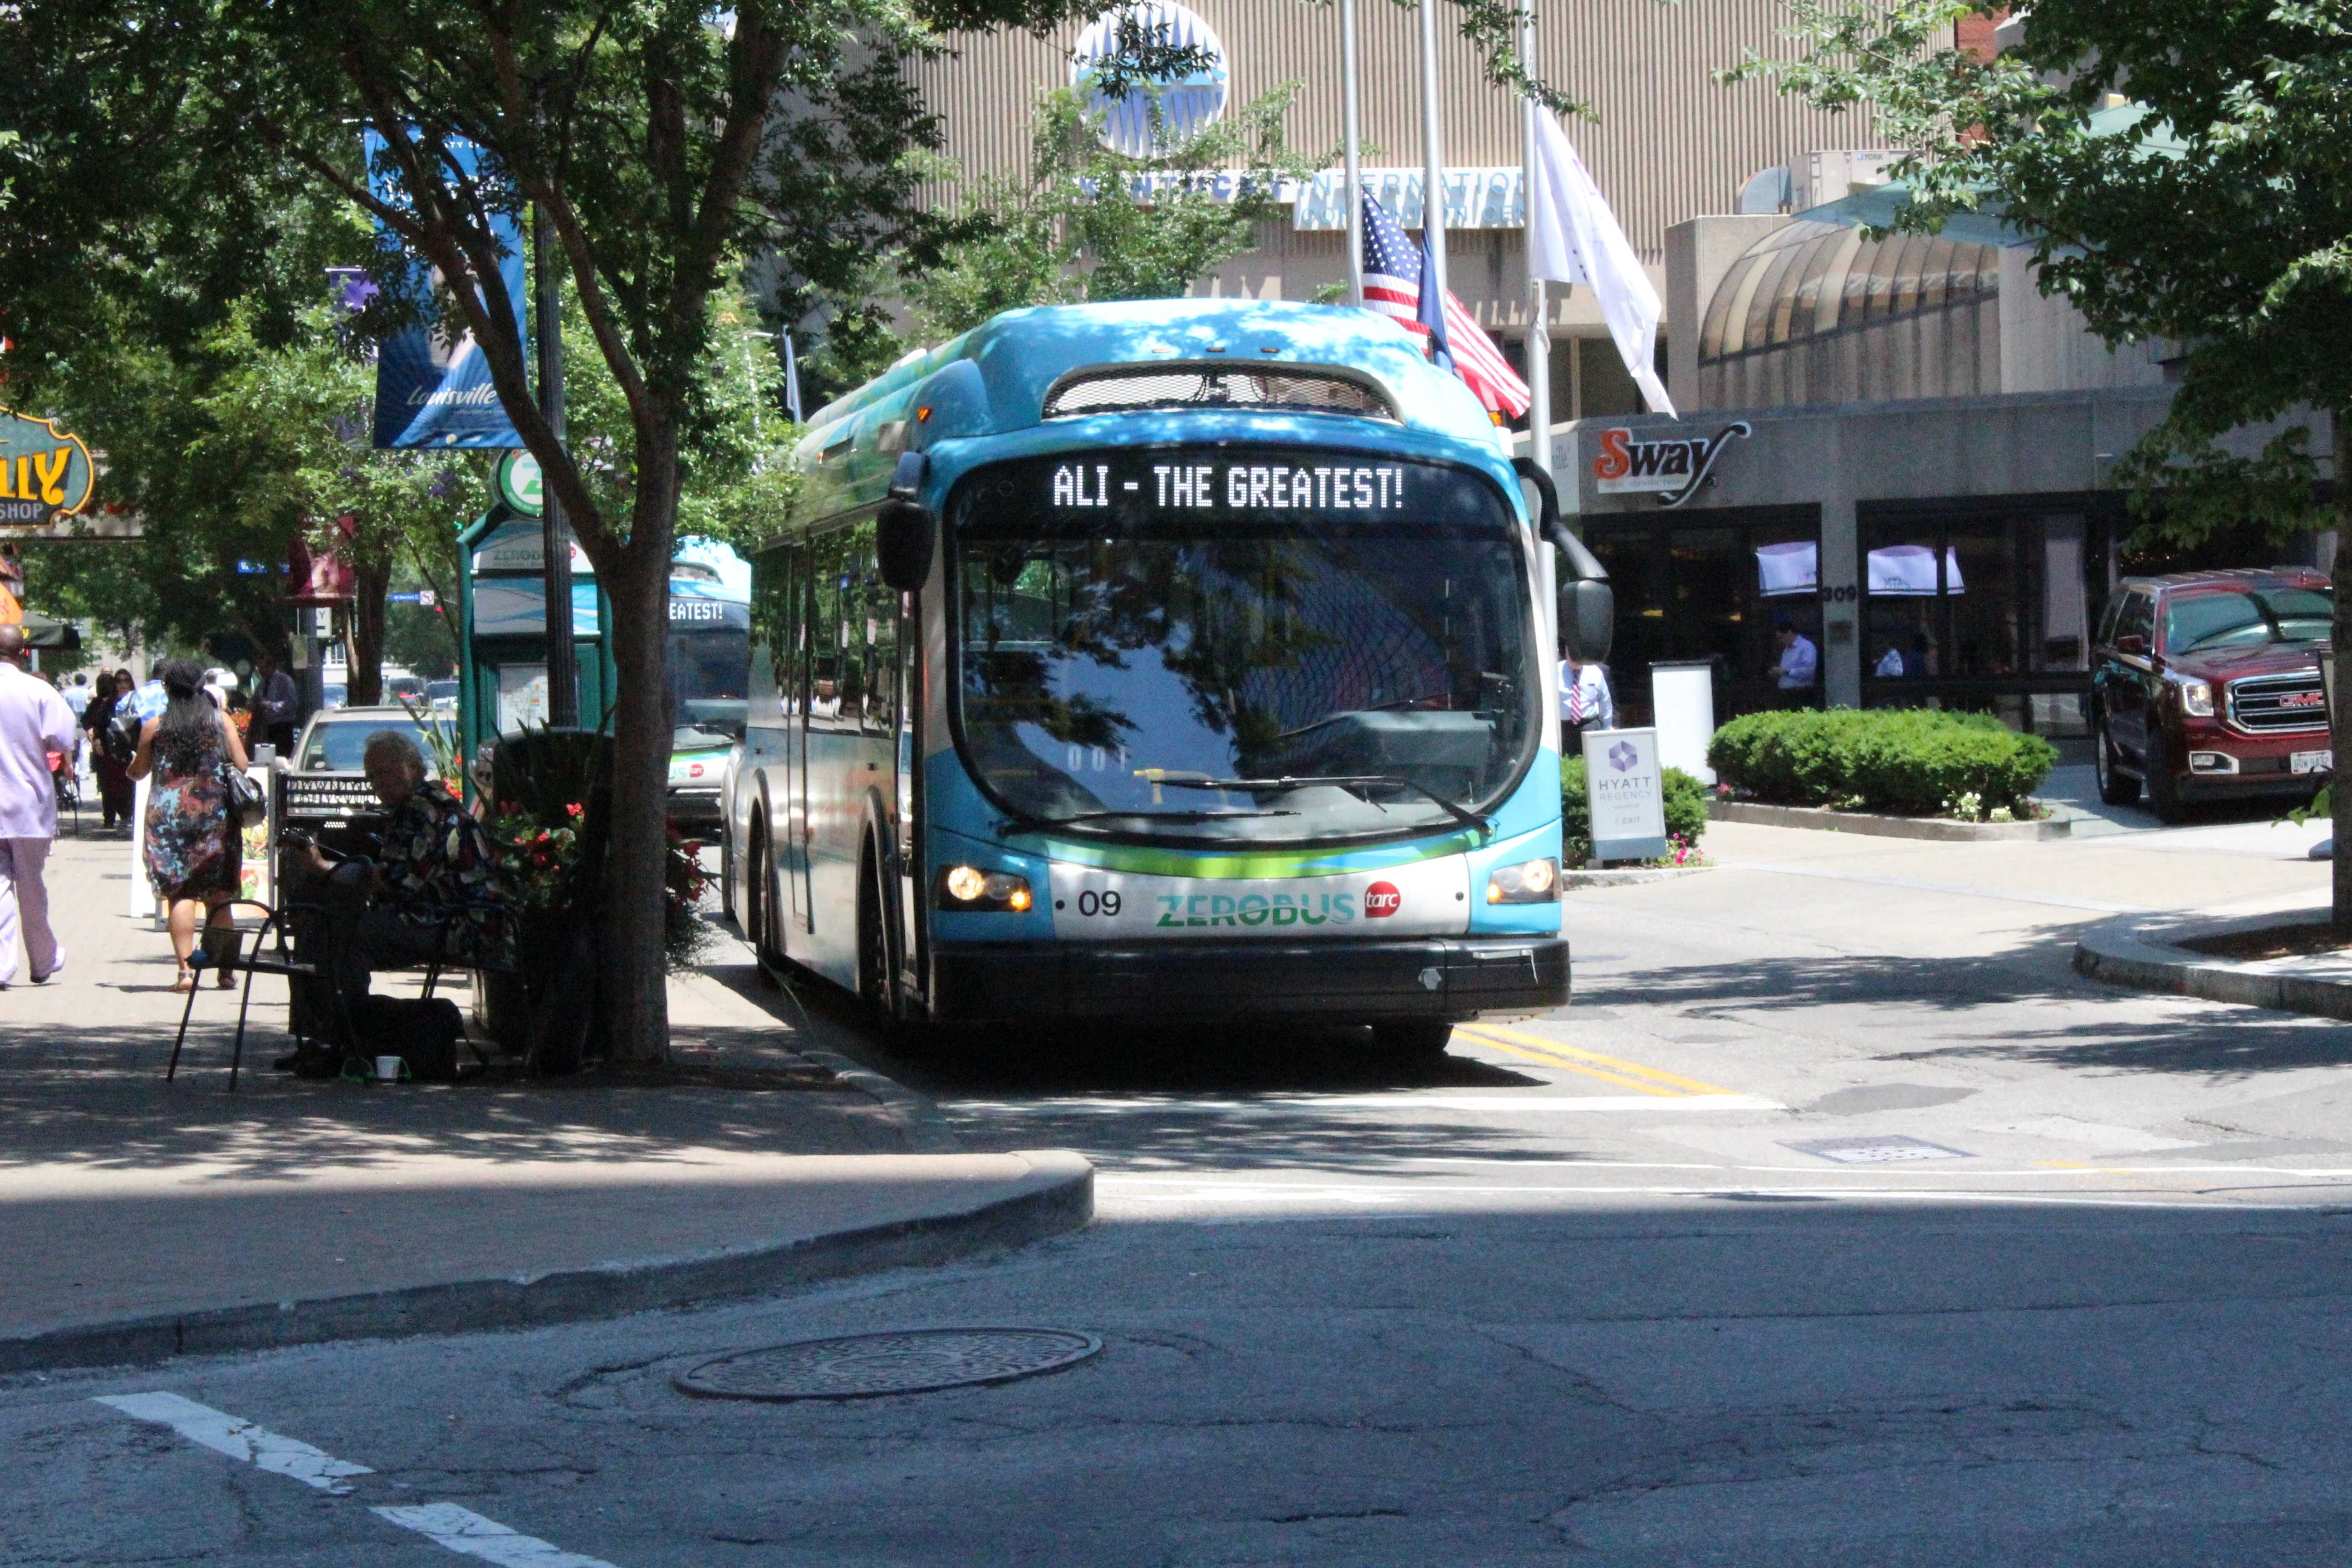 All buses had a scrolling message in support of Ali.